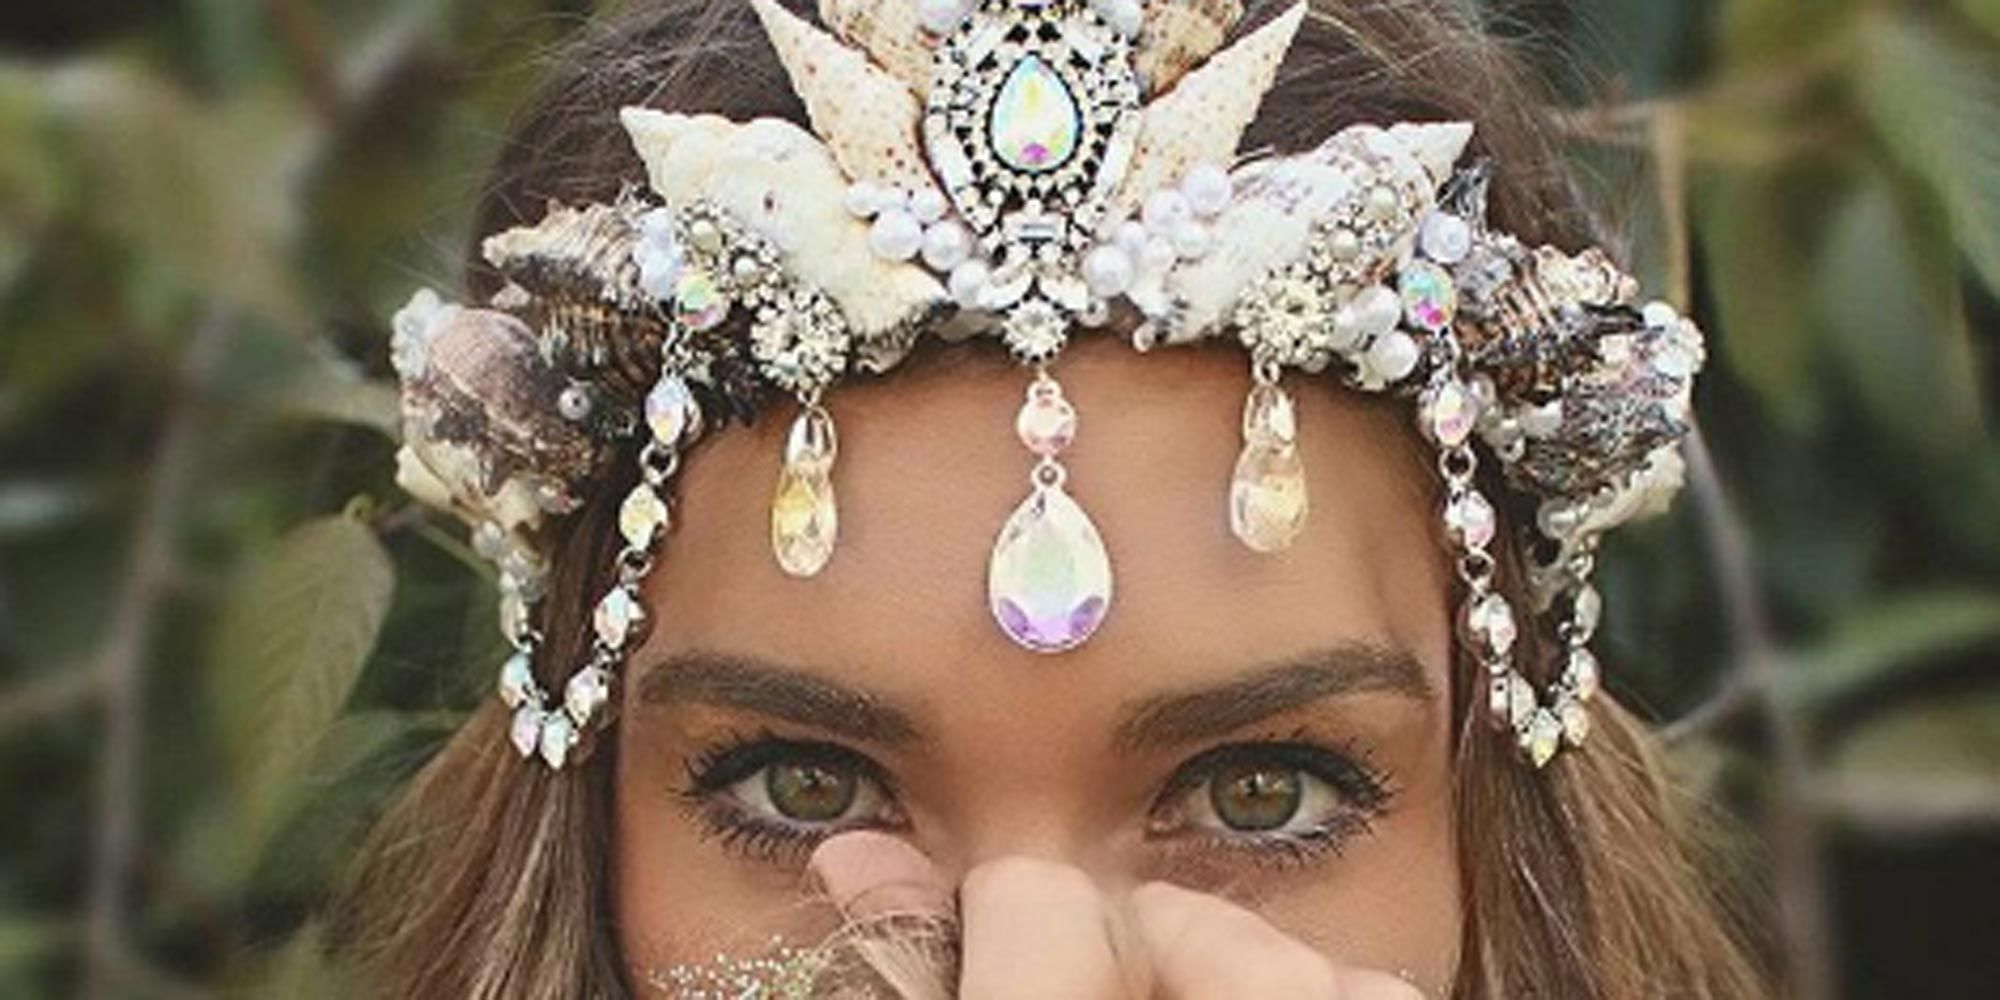 Mermaid crowns where to buy mermaid crowns for music festival style izmirmasajfo